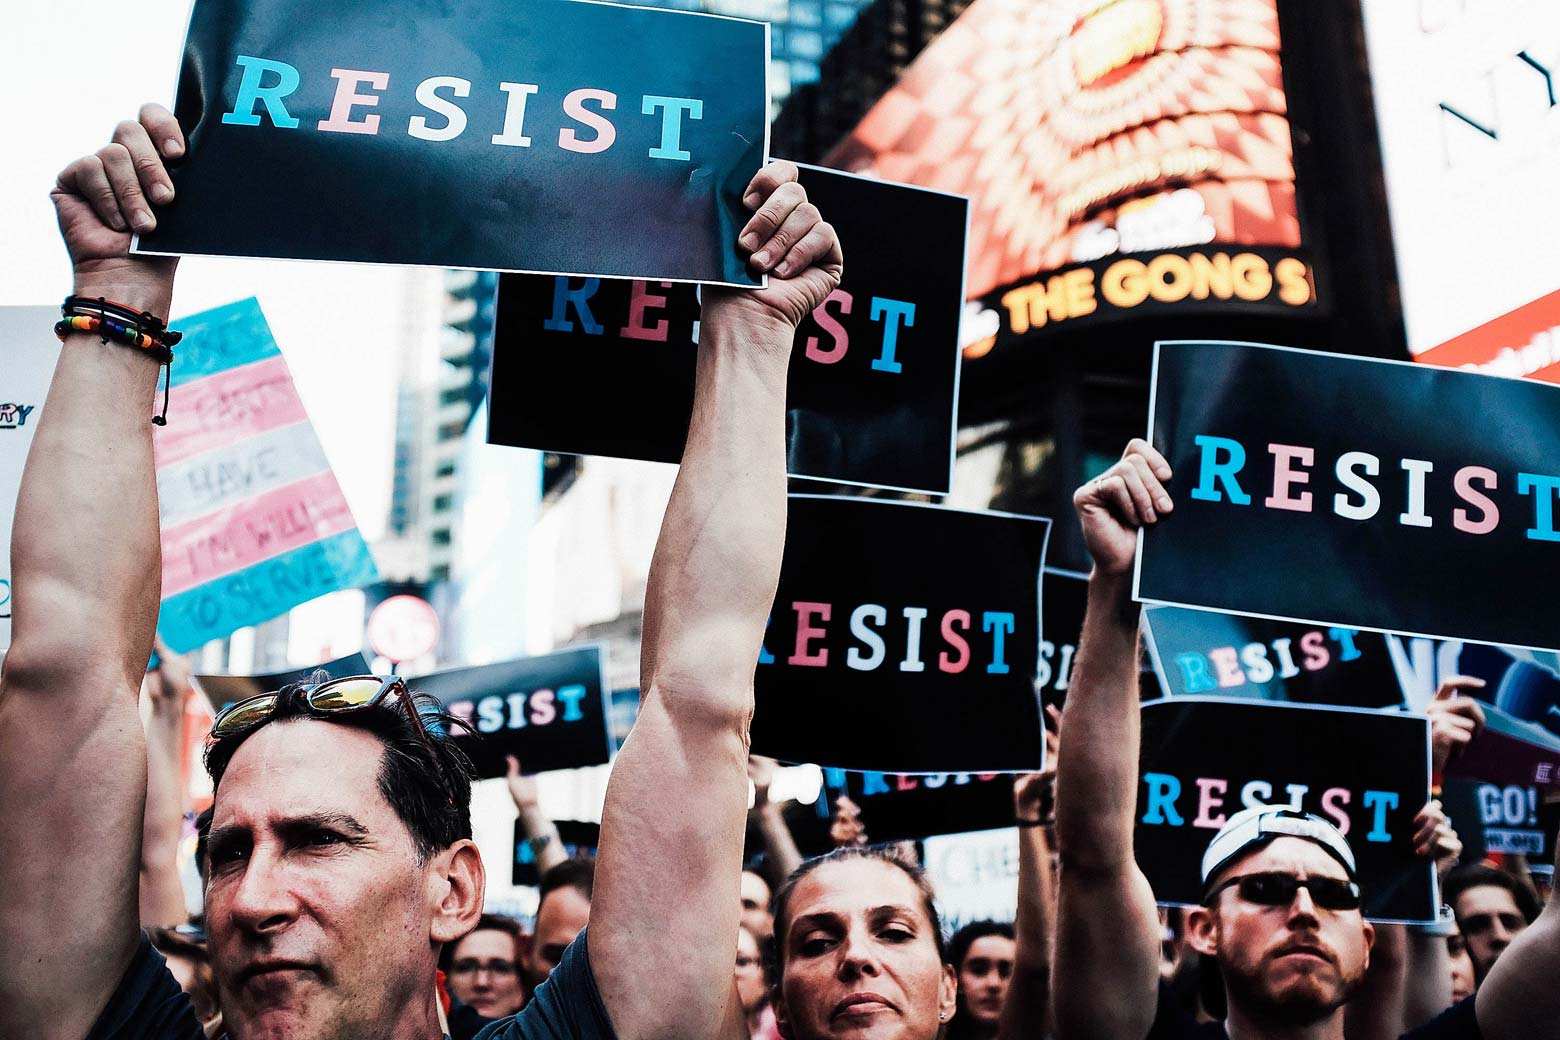 """Protesters hold up signs that say, """"RESIST"""" with letters in the blue, white, and pink colors of the transgender symbol."""